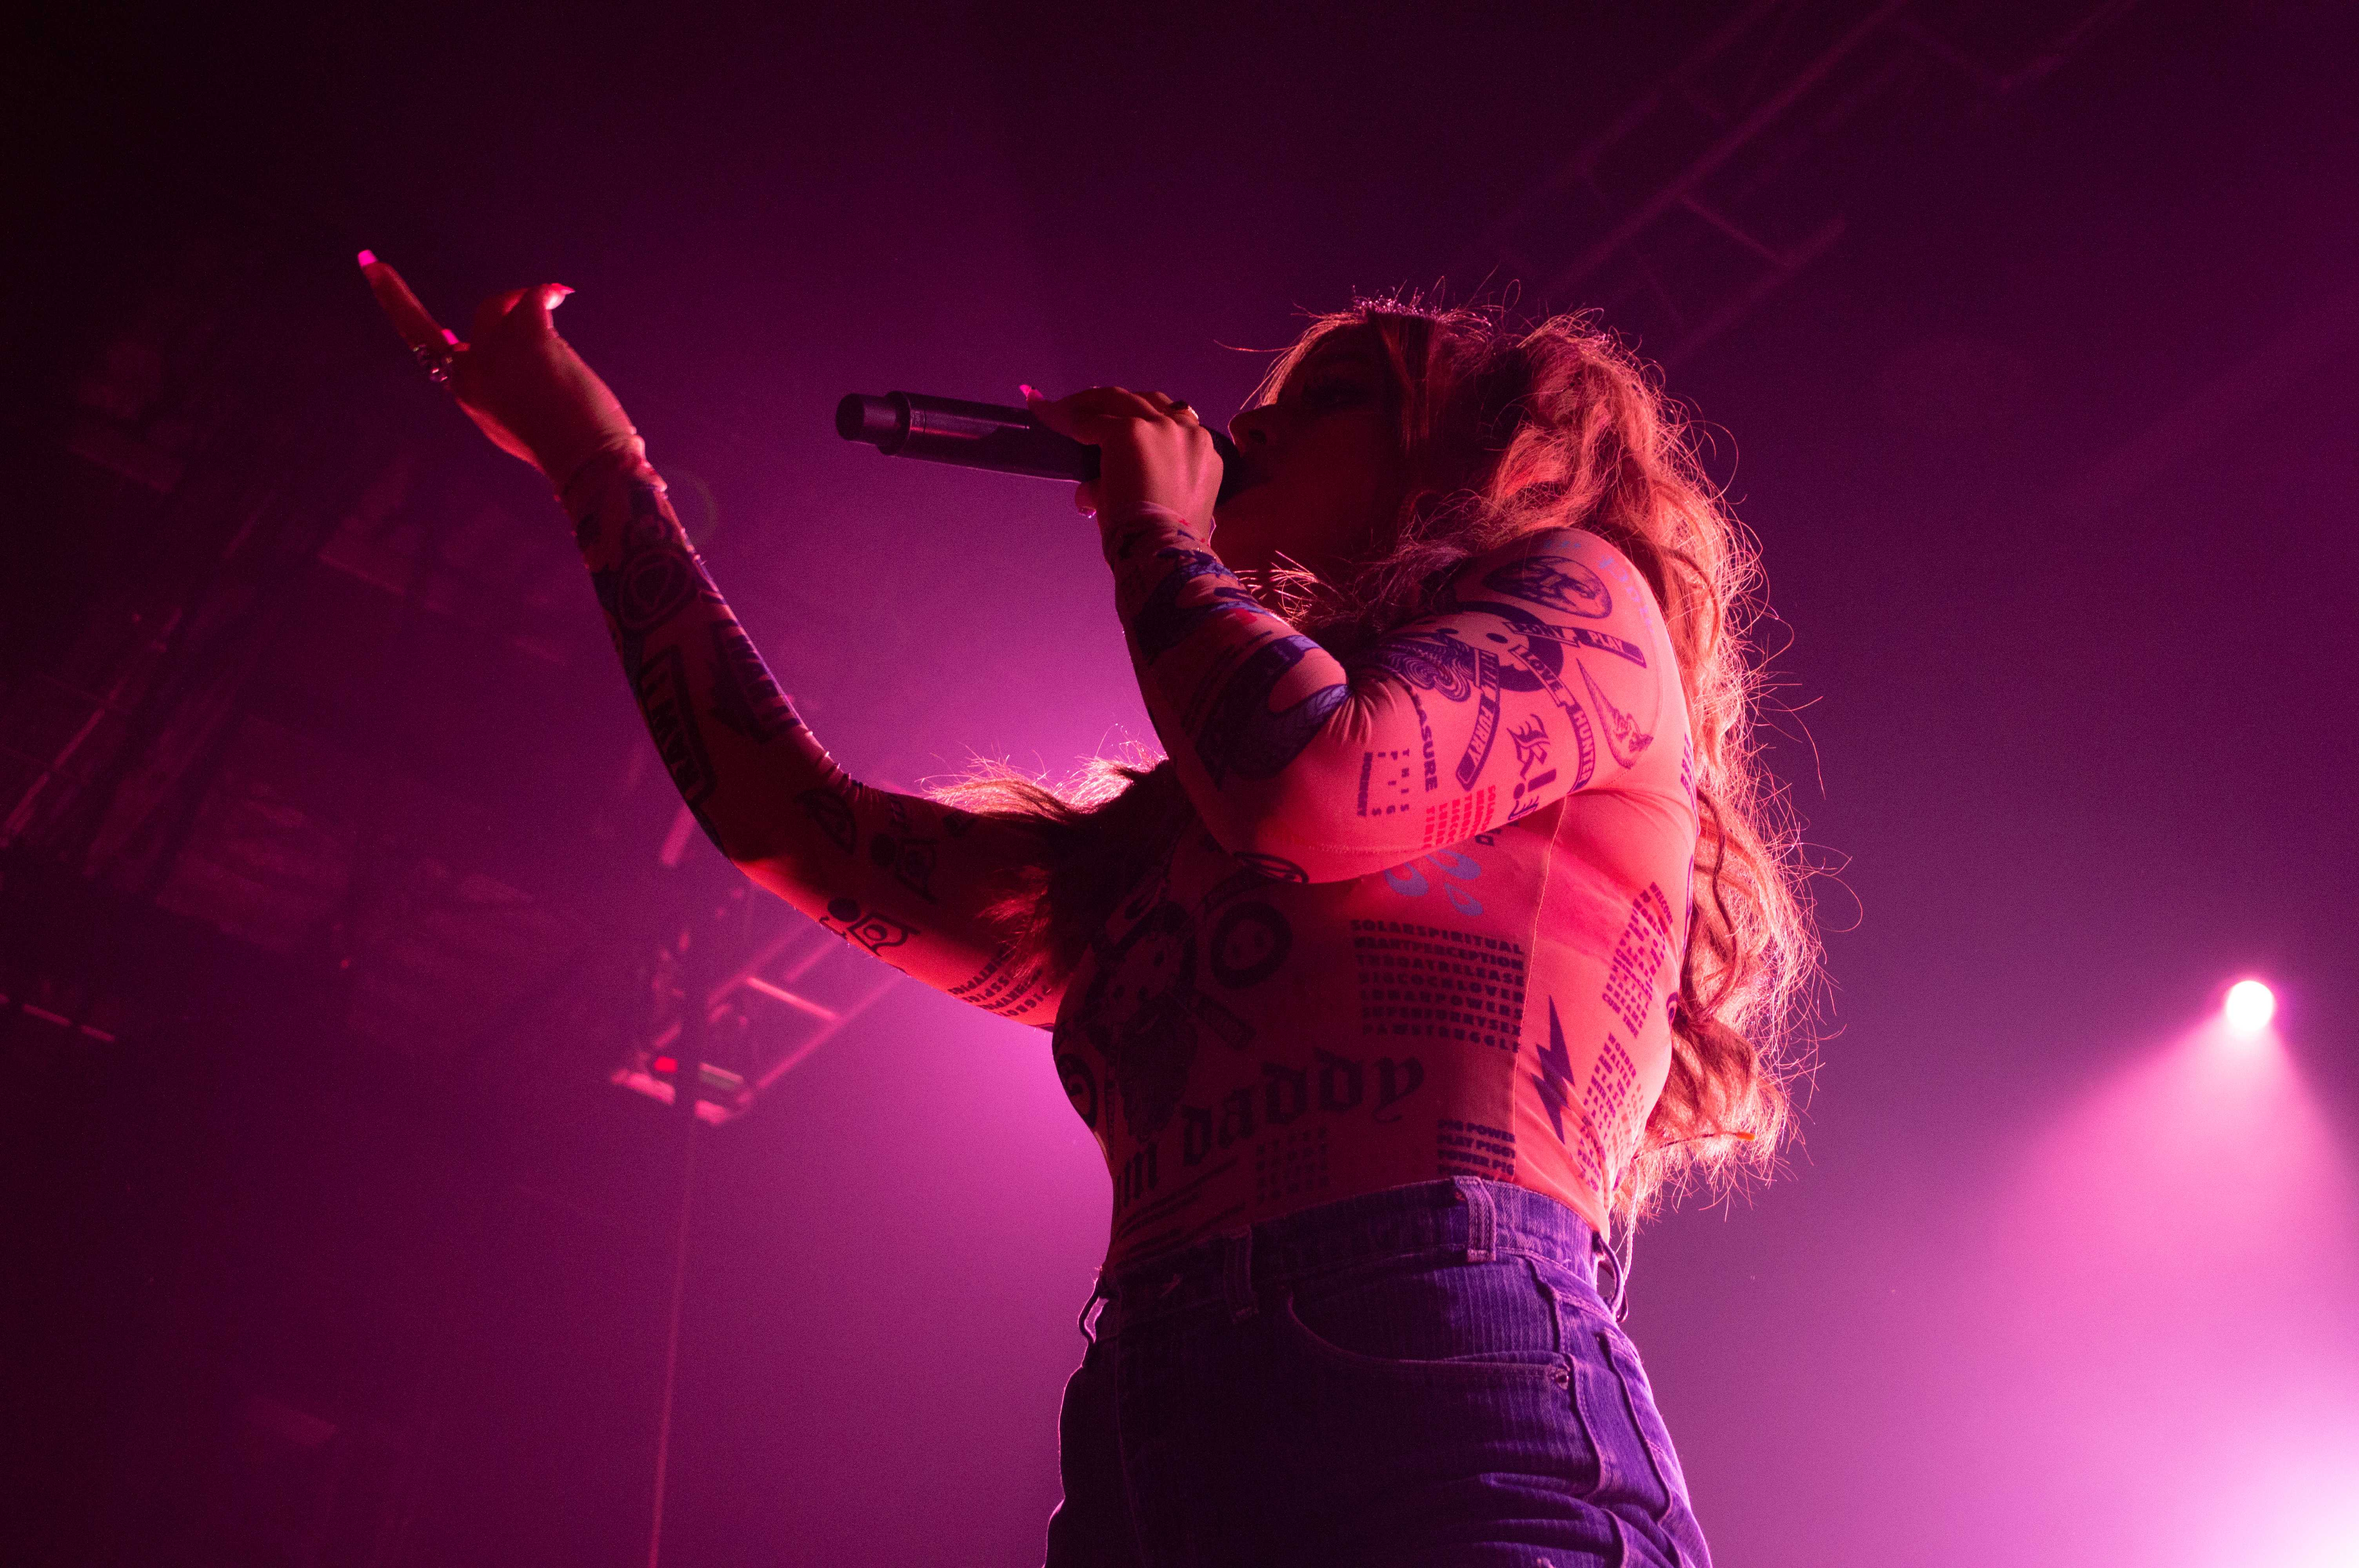 Alina Baraz performs at First Avenue in Minneapolis. Photo by Betsy Barthelemy '21